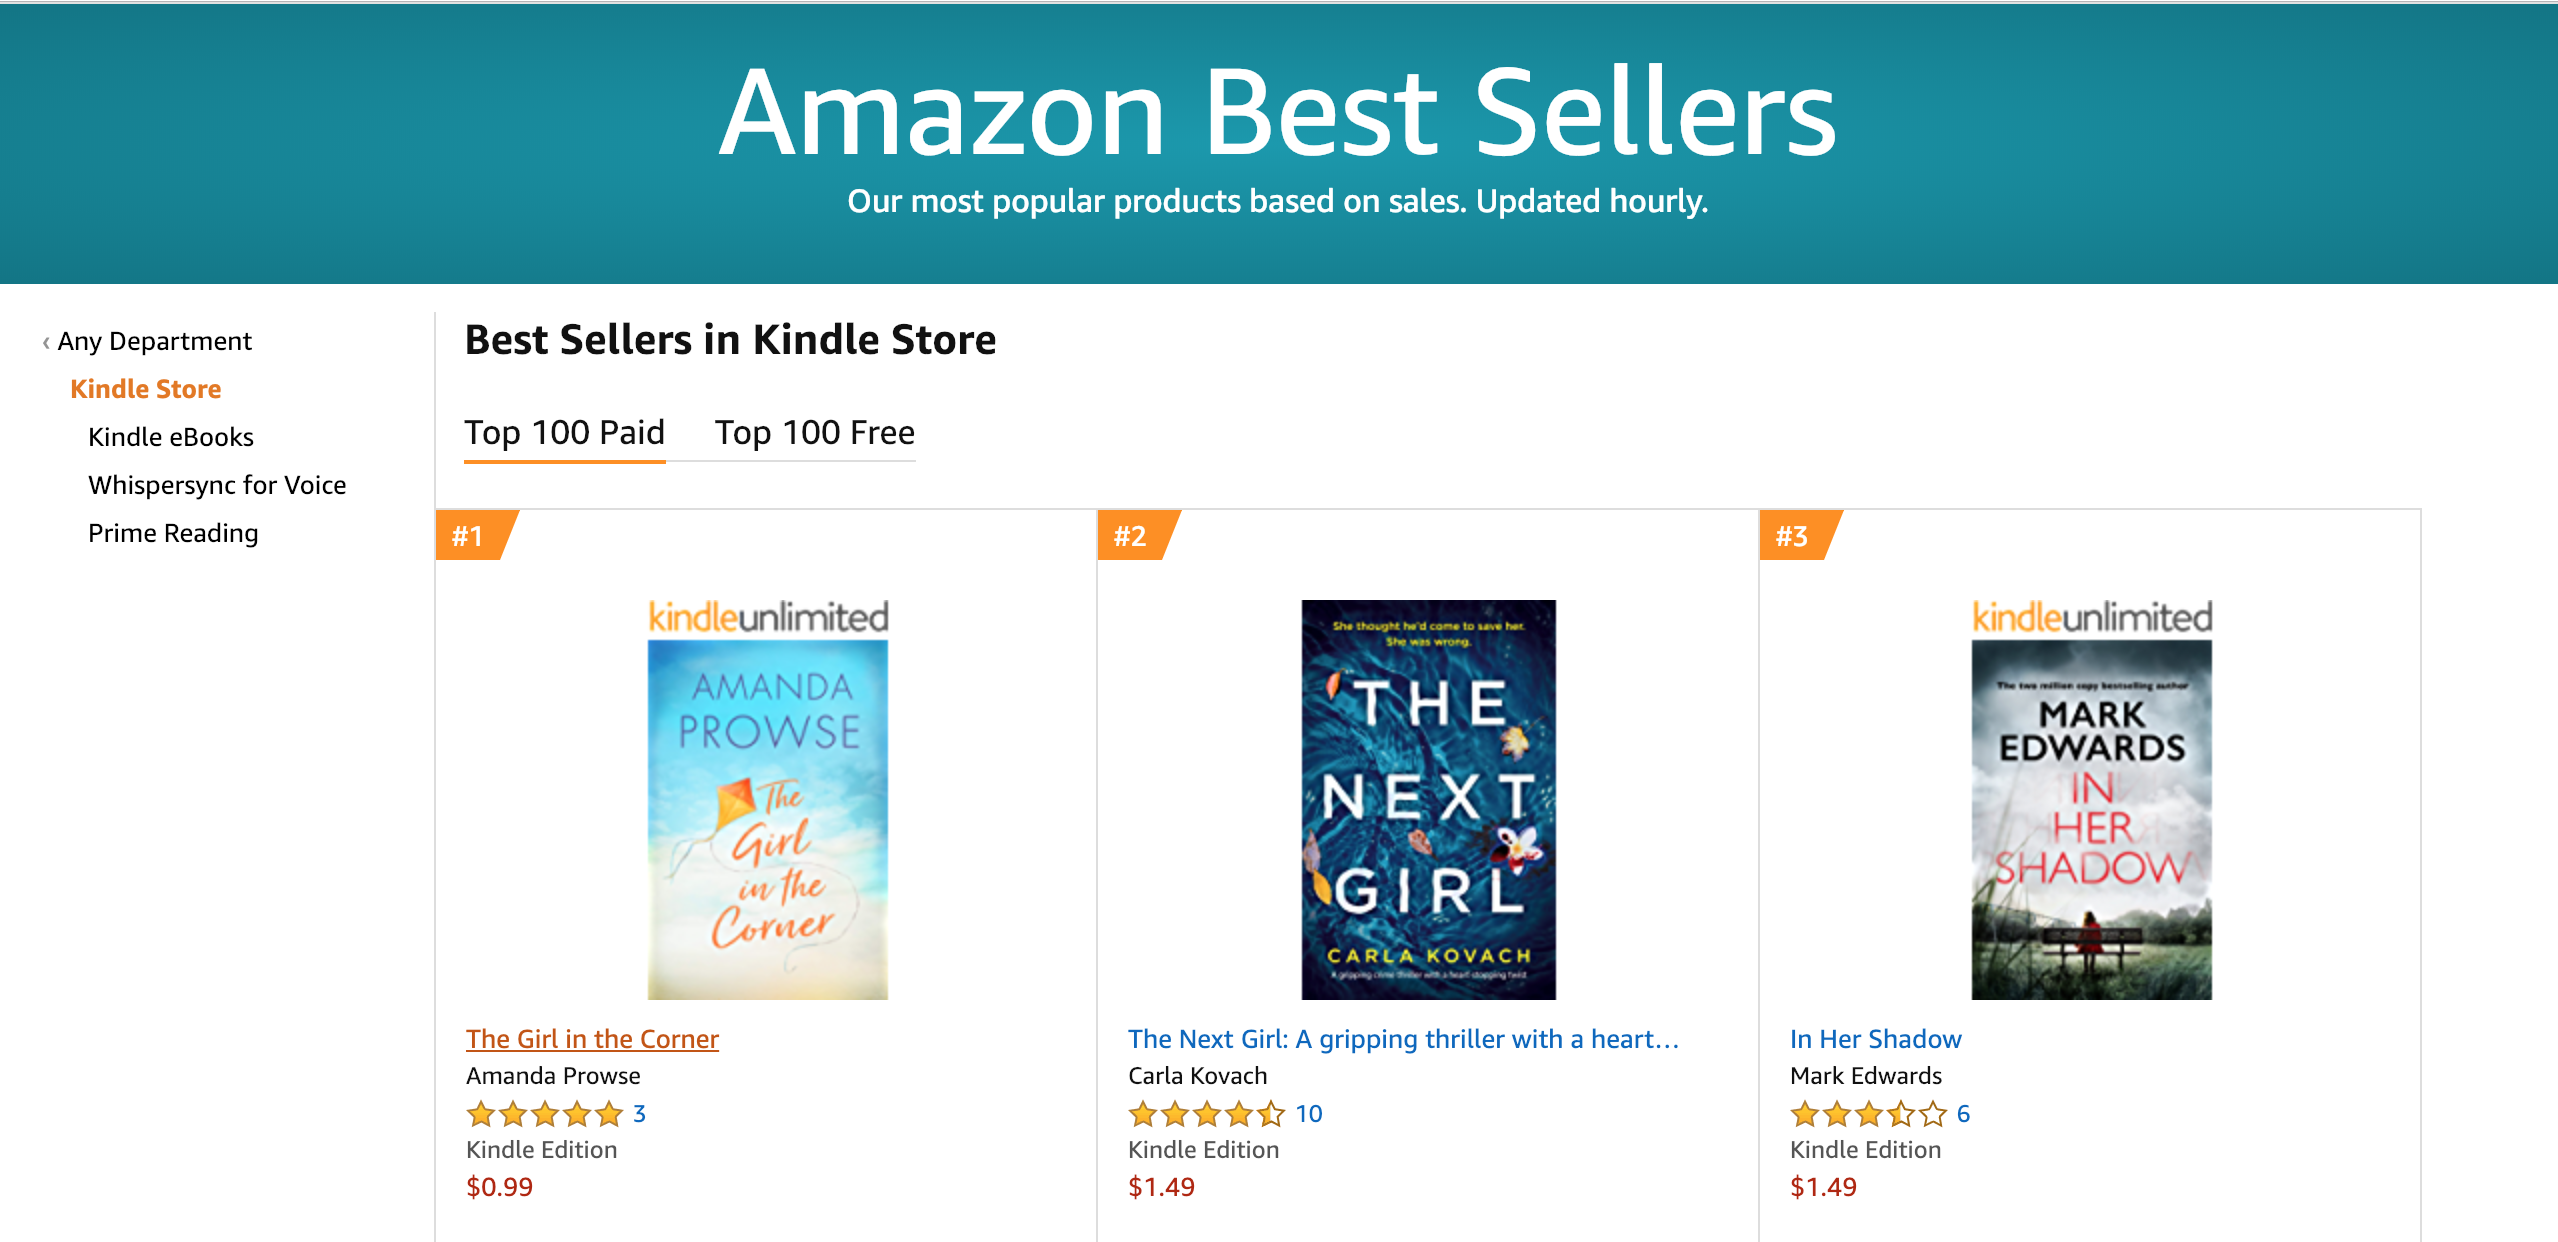 No.1 in Australia and New Zealand for 'The Girl in the Corner'